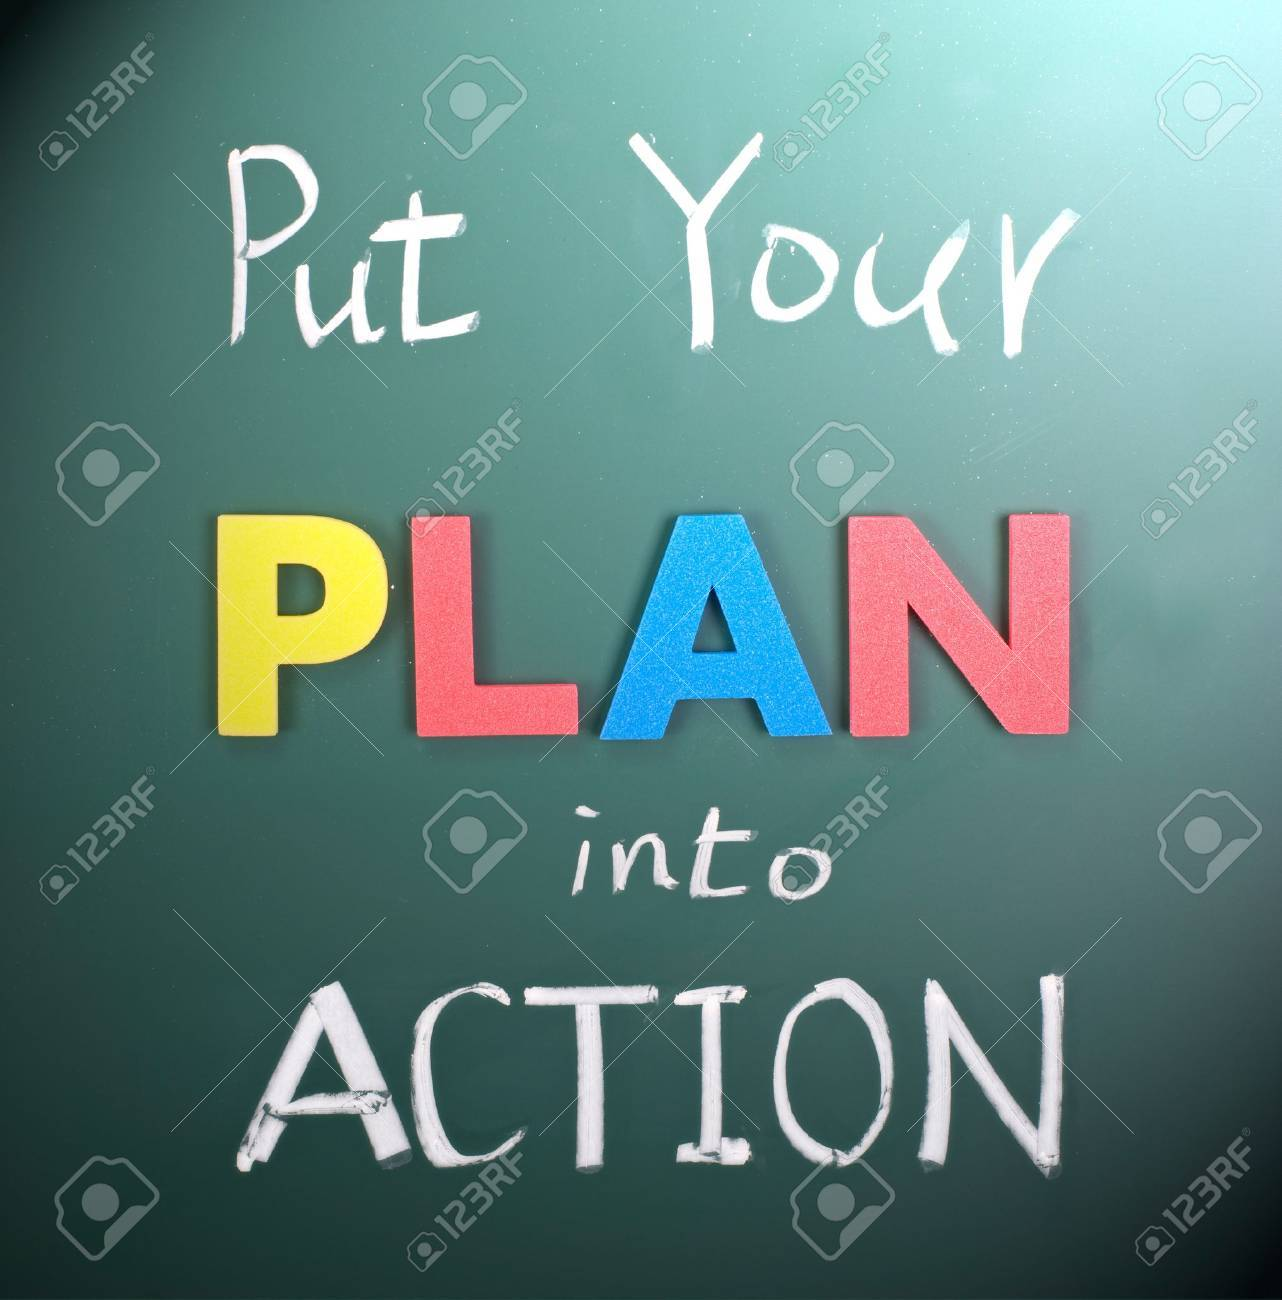 put your plan into action words on blackboard stock photo put your plan into action words on blackboard stock photo 8947348